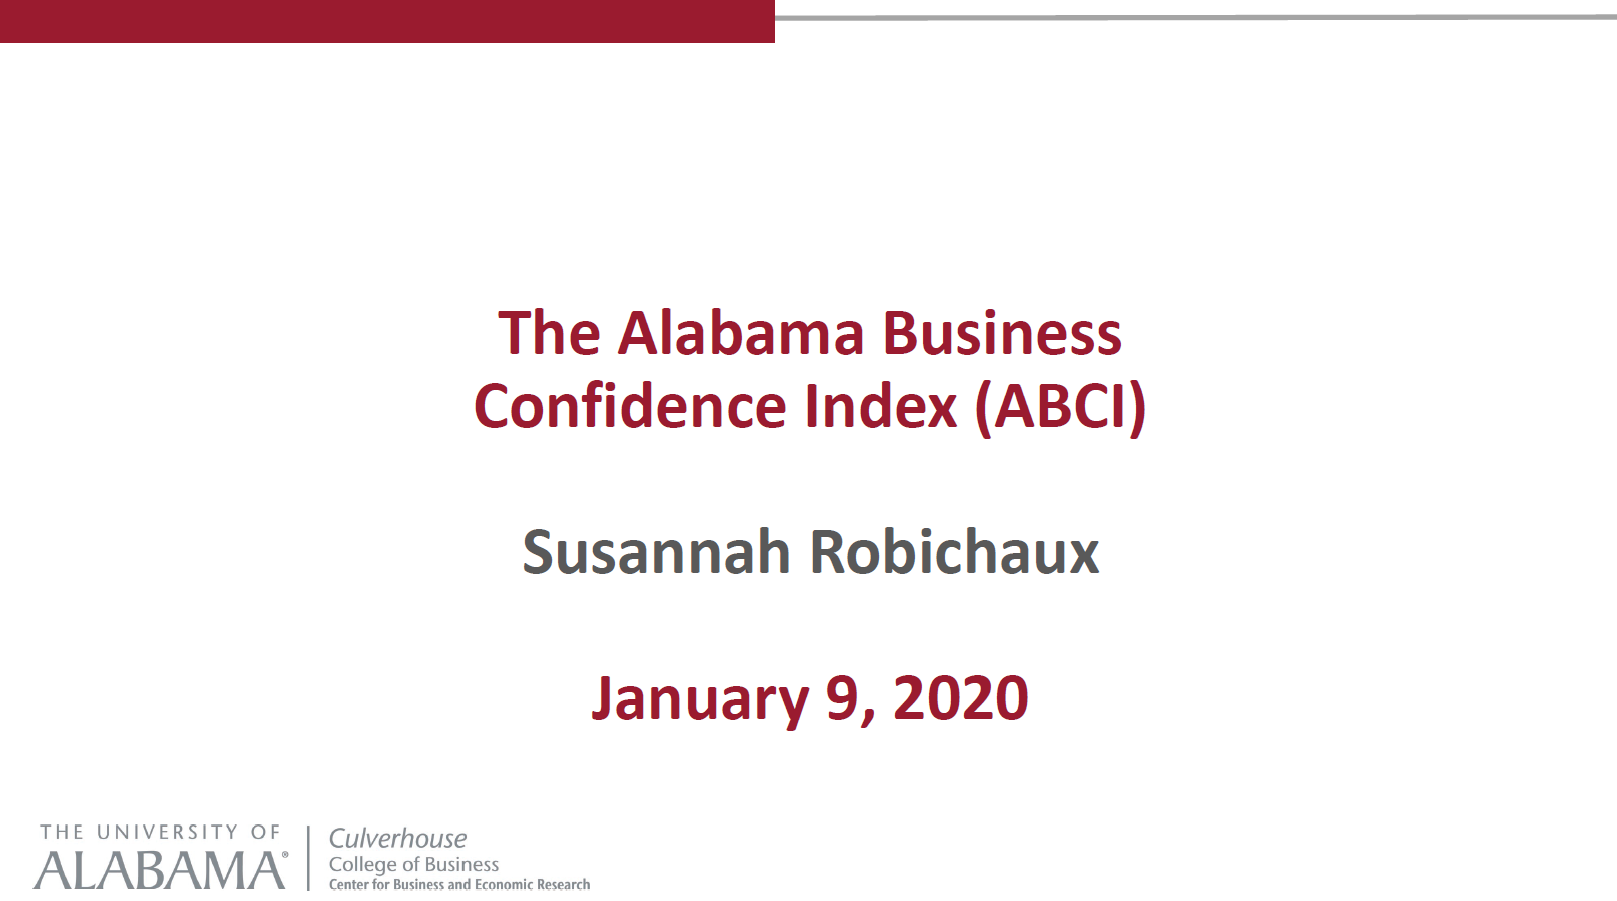 The Alabama Business Confidence Index Presentation 2020